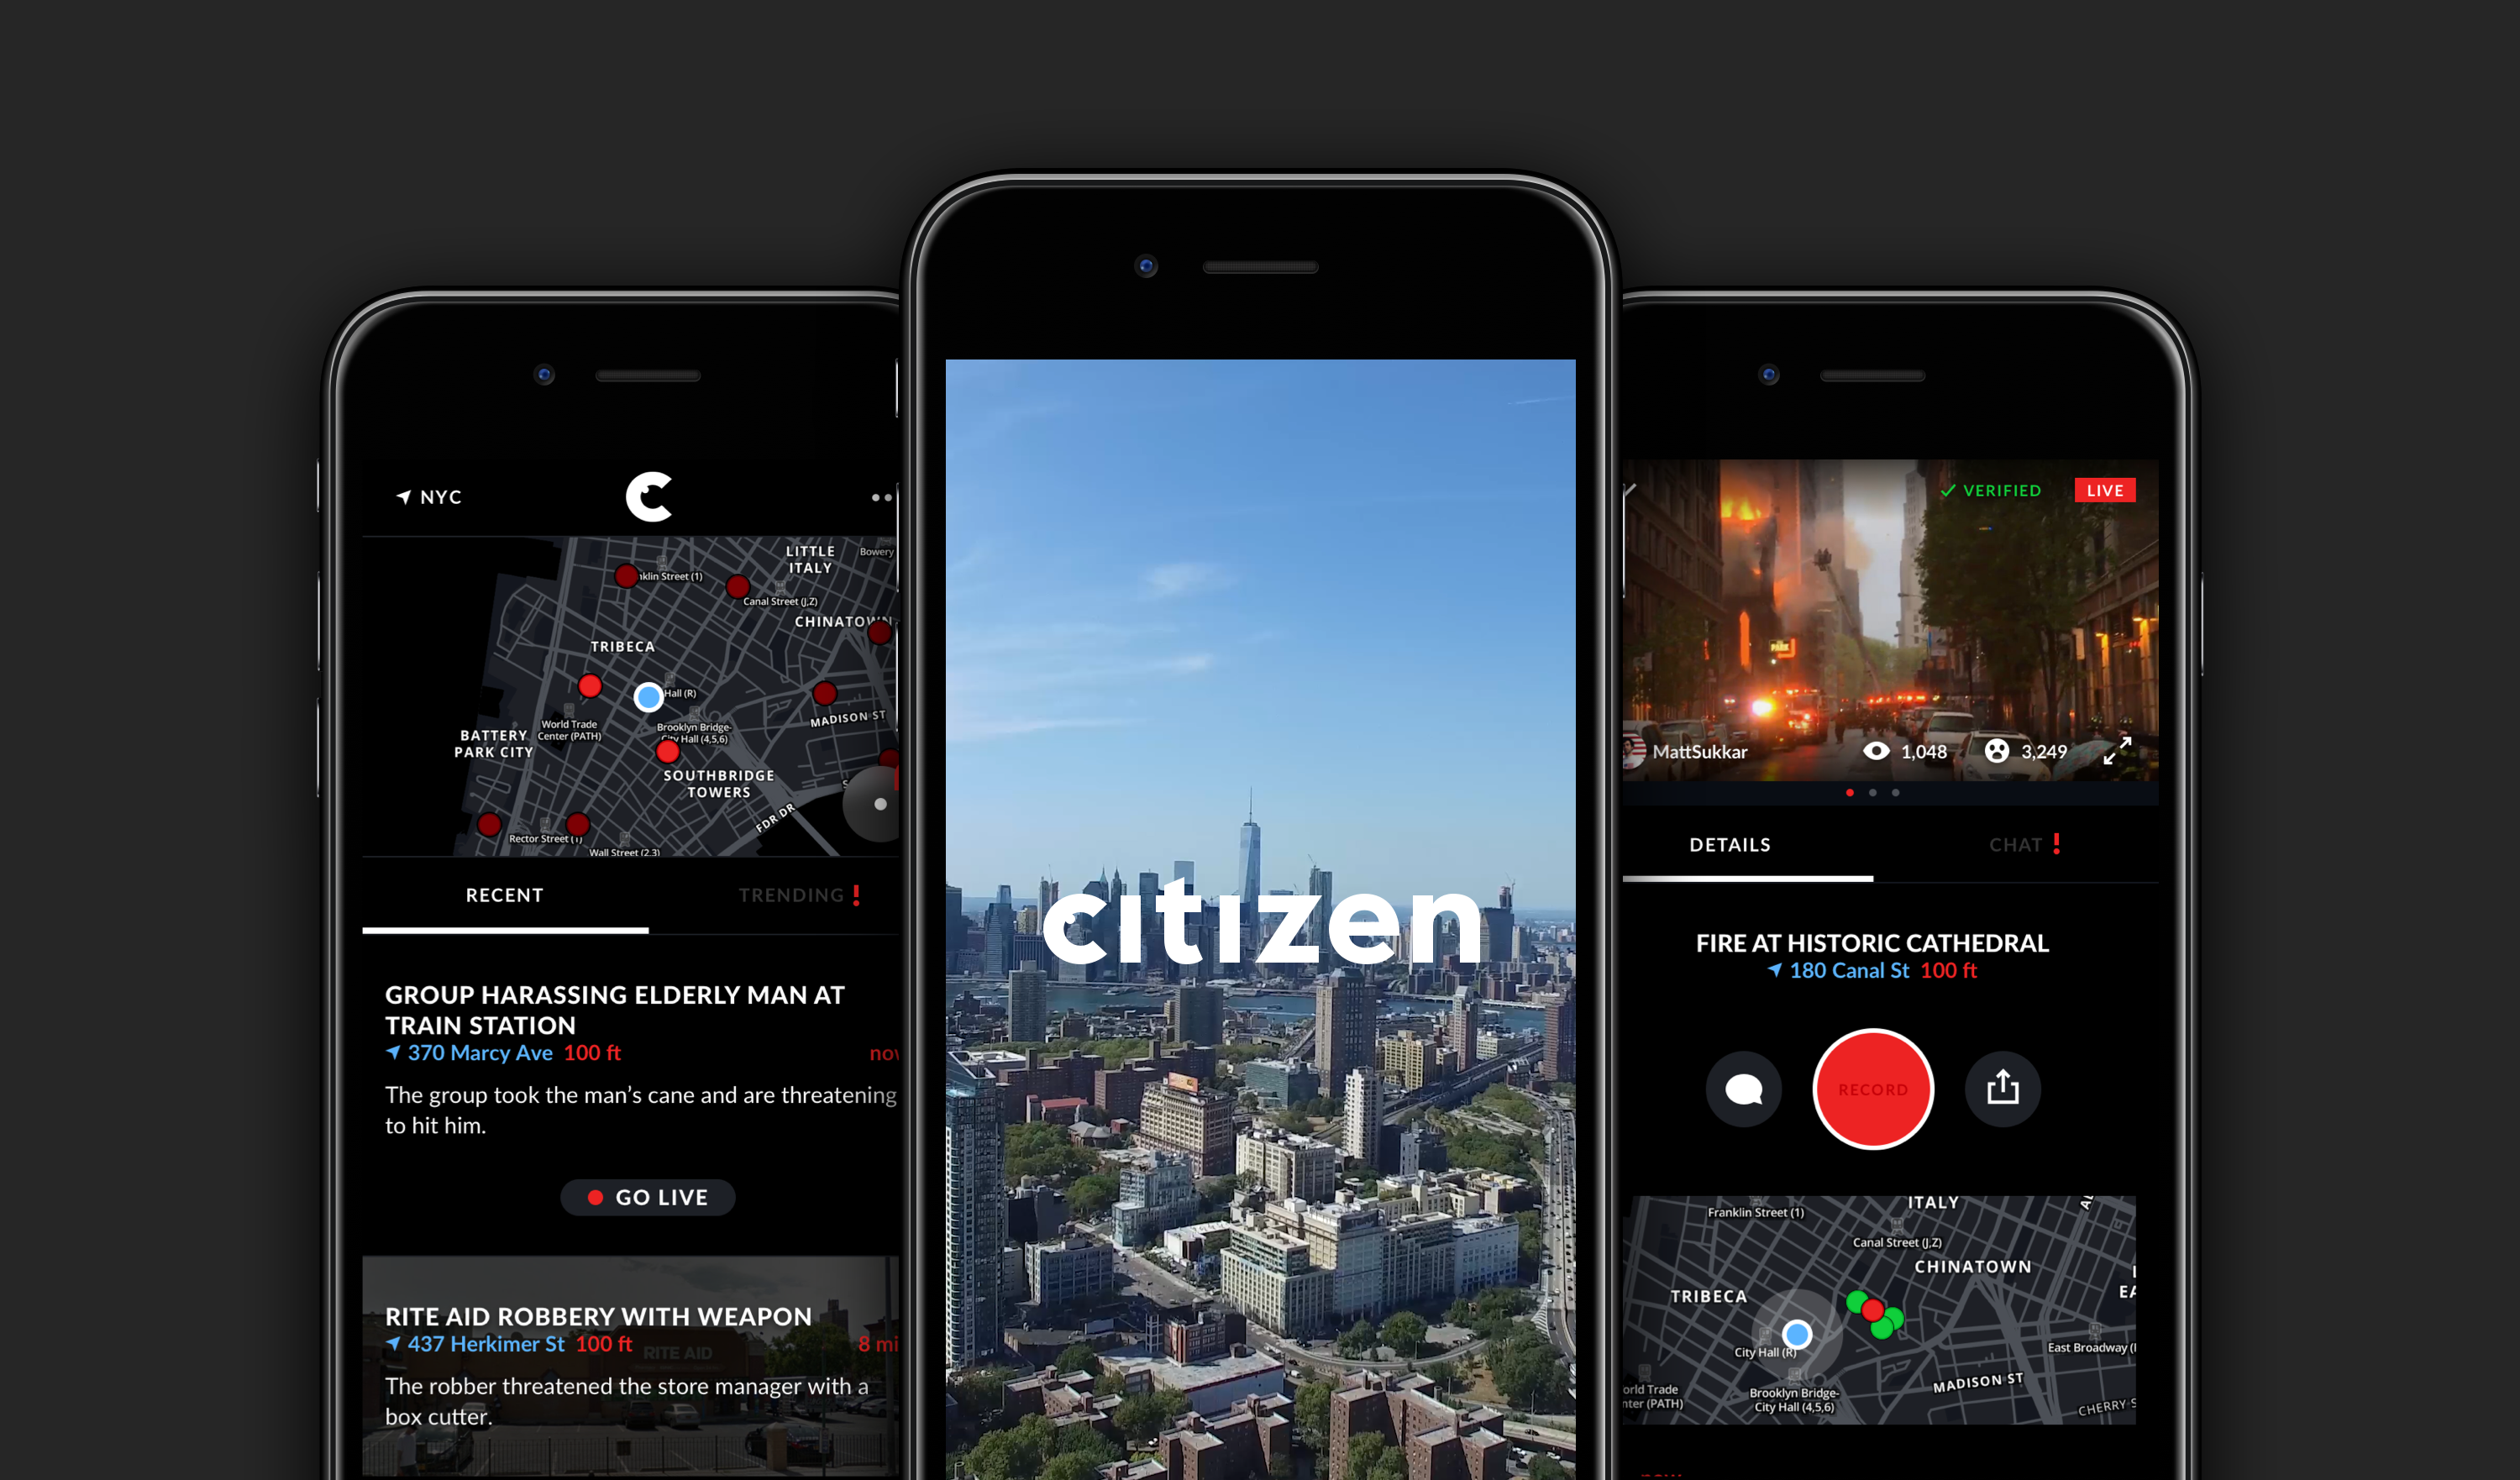 Real Time 911 >> Citizen app launches in NYC to spread word about crime | New York Amsterdam News: The new Black view